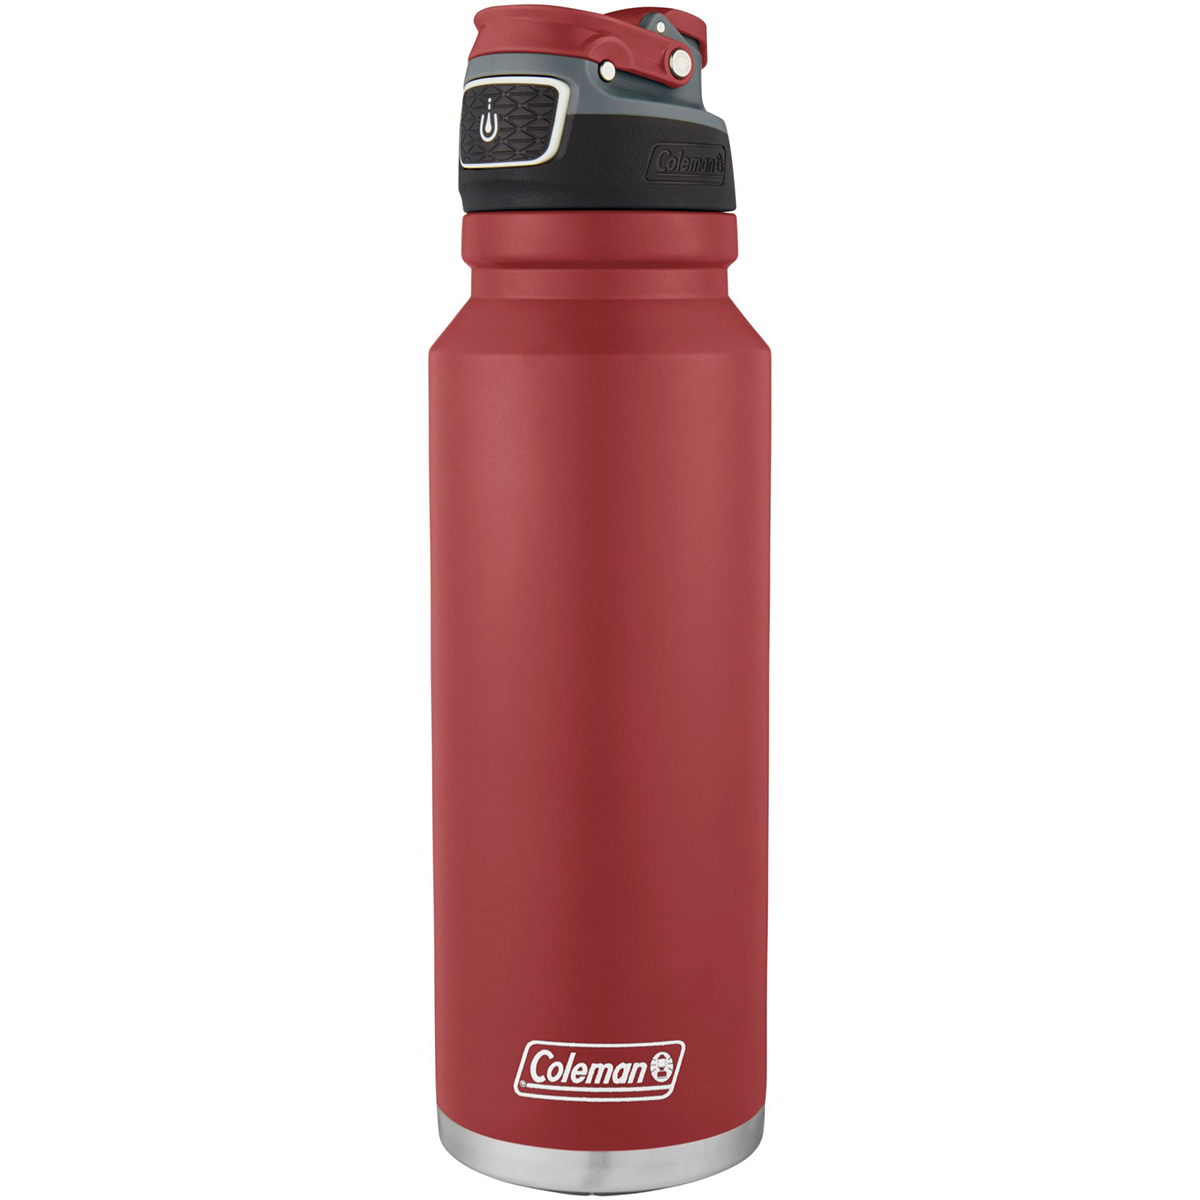 thumbnail 11 - Coleman 40 oz. Free Flow Autoseal Insulated Stainless Steel Water Bottle